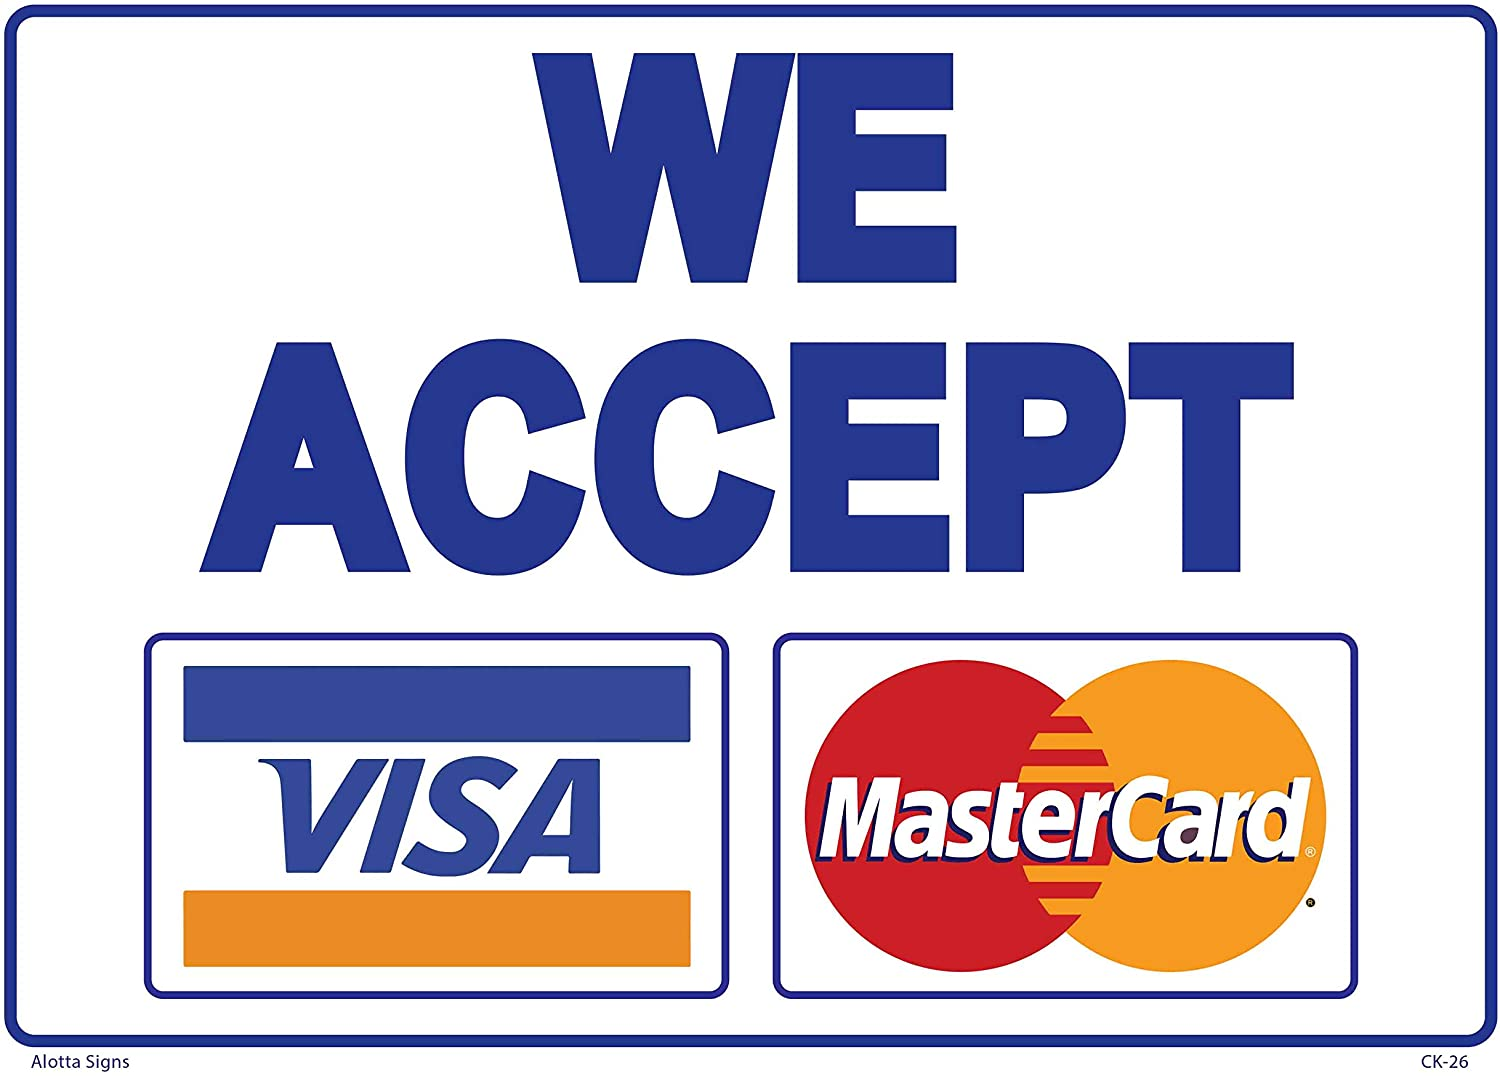 "We Accept VISA MasterCard 13x13 Sign .13"" Plastic"